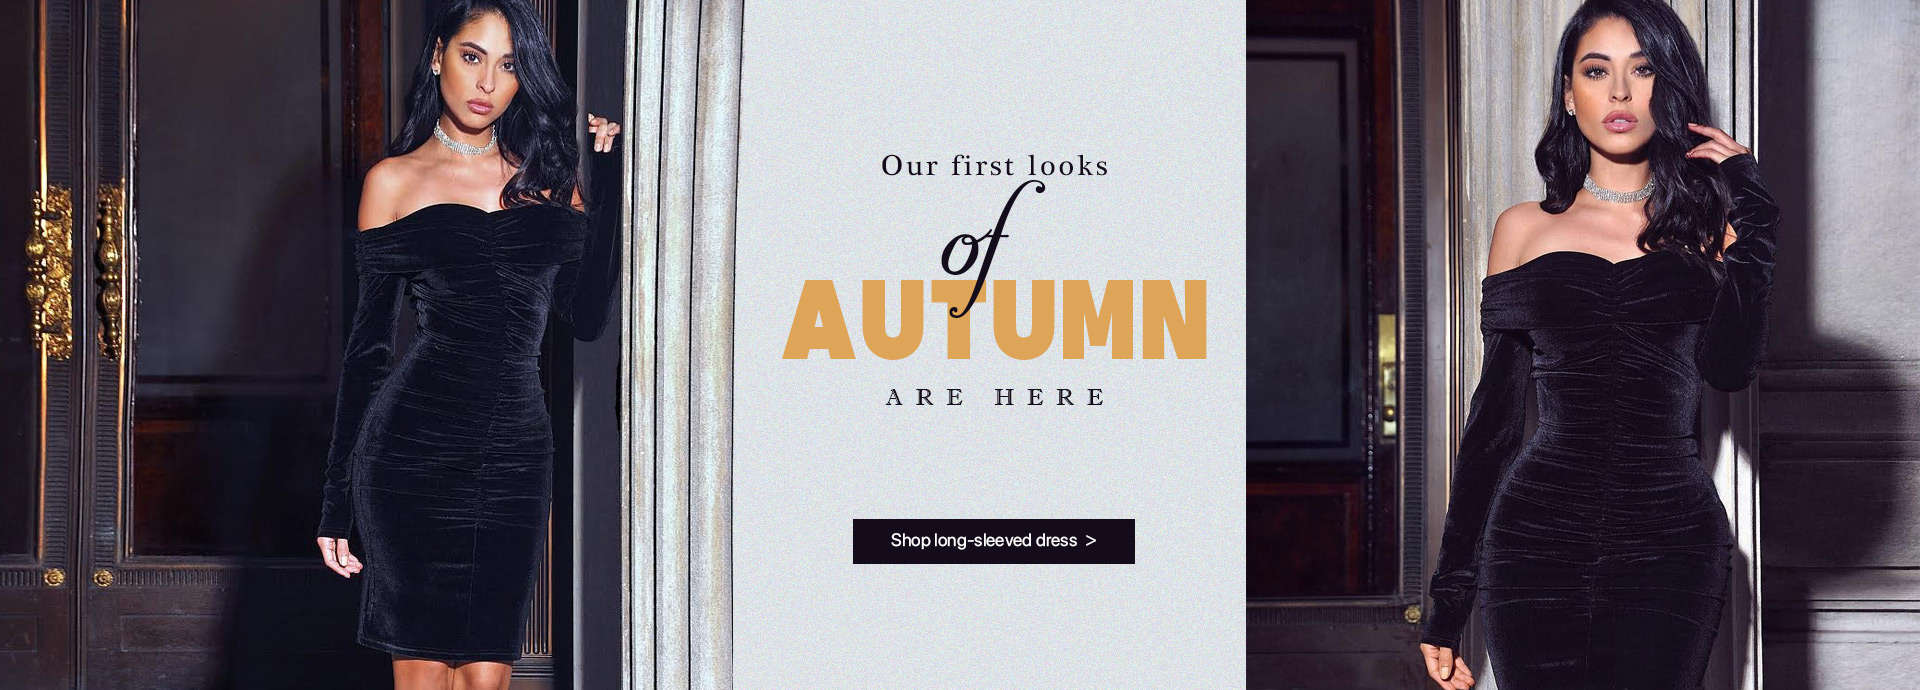 Our First Looks Of Autumn Are Here